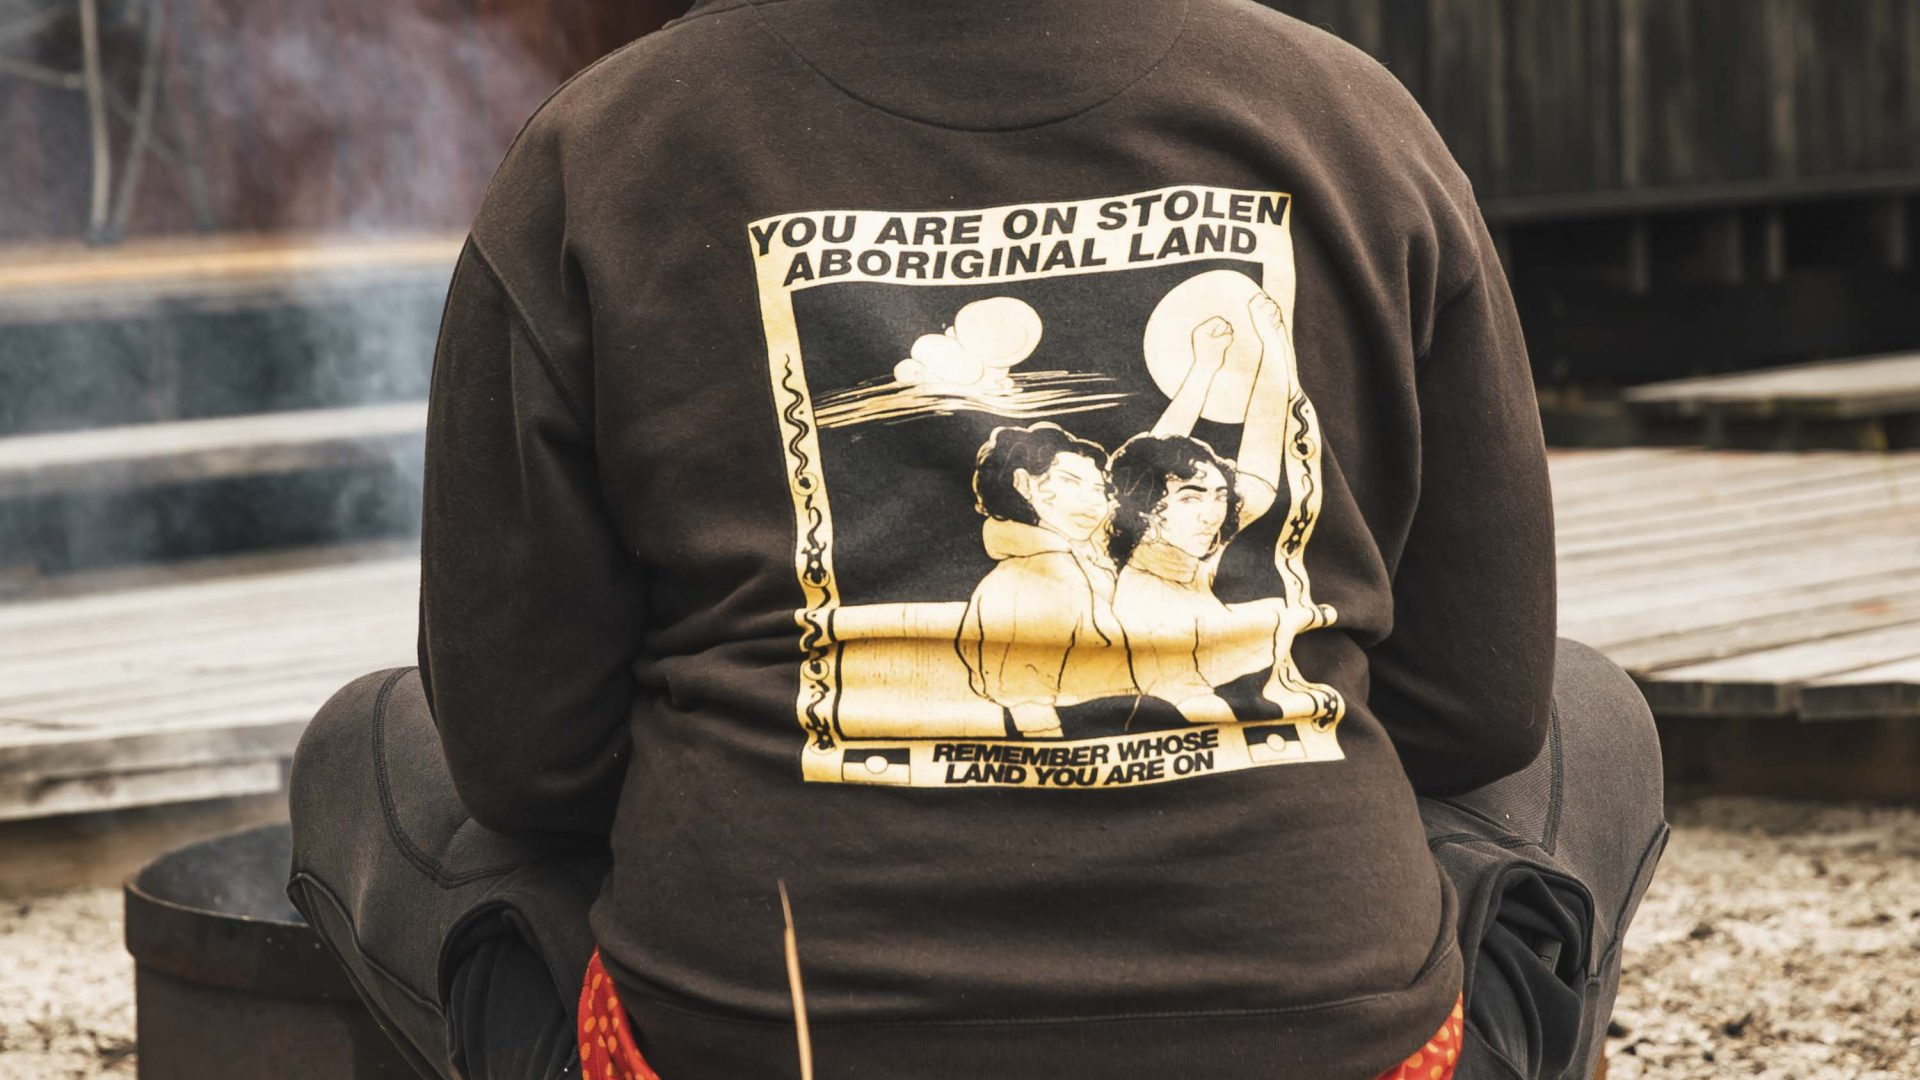 The back of someone's jumper reads 'You are on stolen Aboriginal land'.